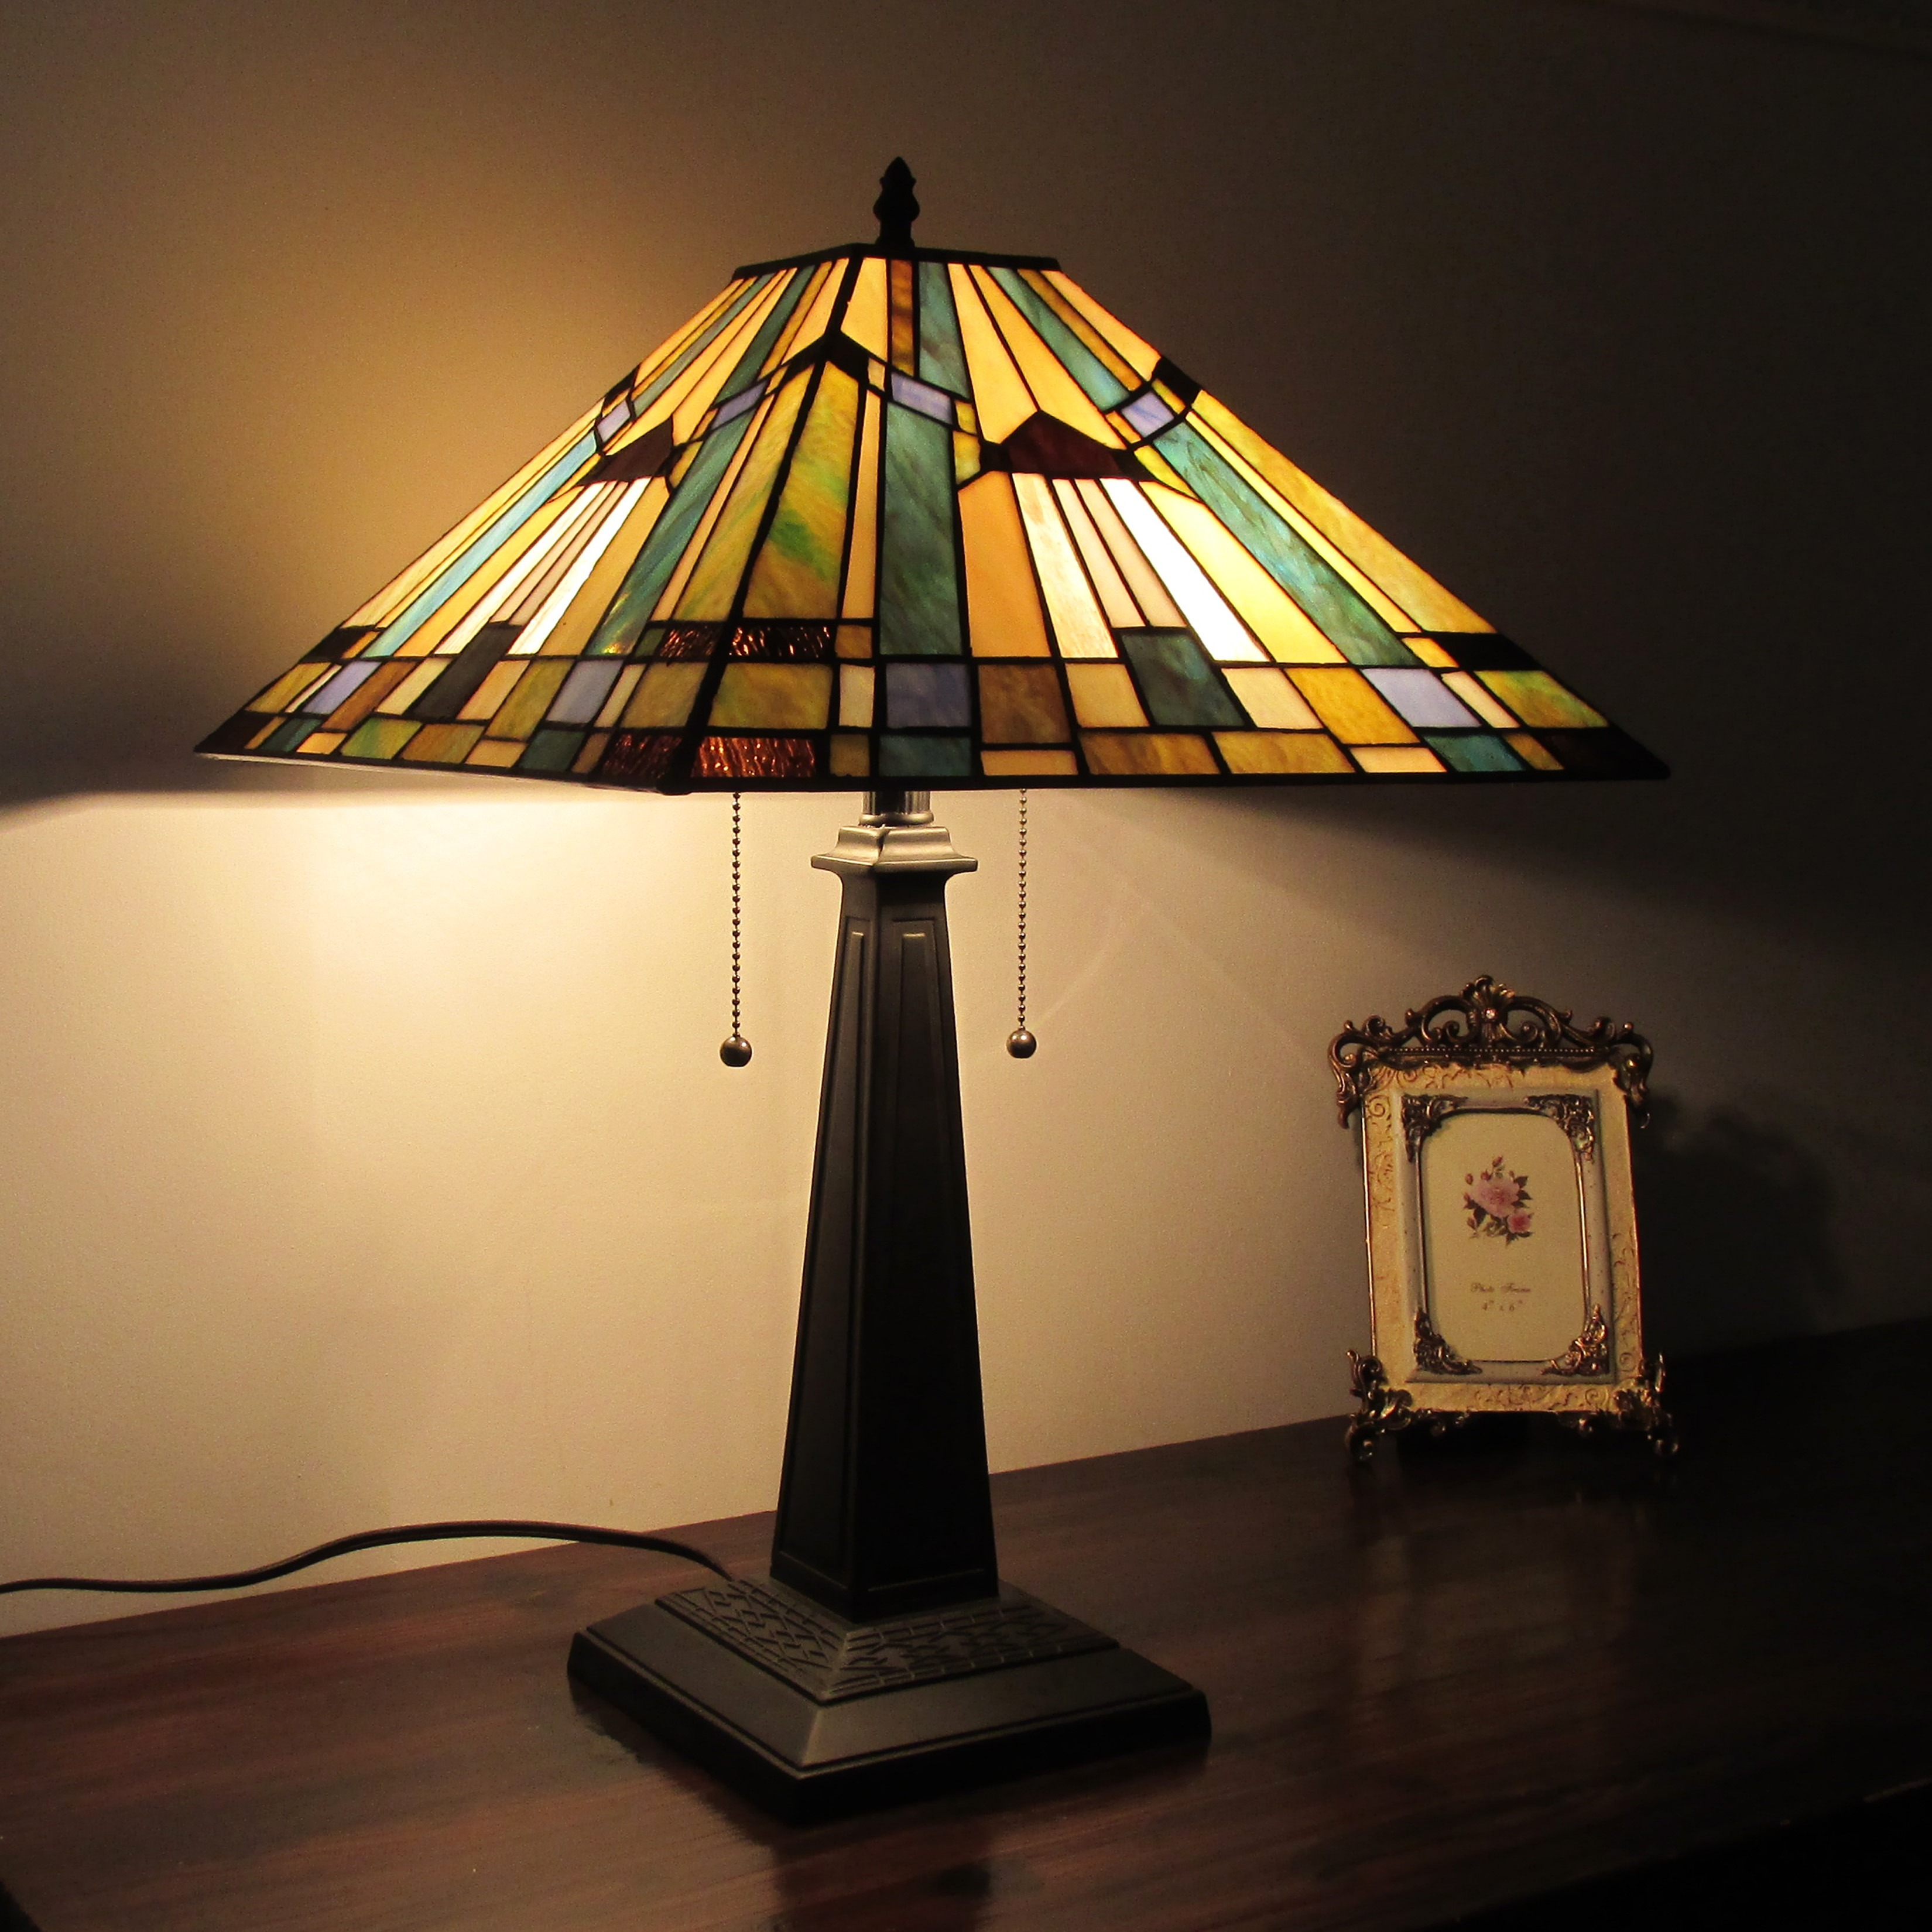 Living Room Lamp Shades: Tiffany Table Lamps For Living Room Stained Glass Shades